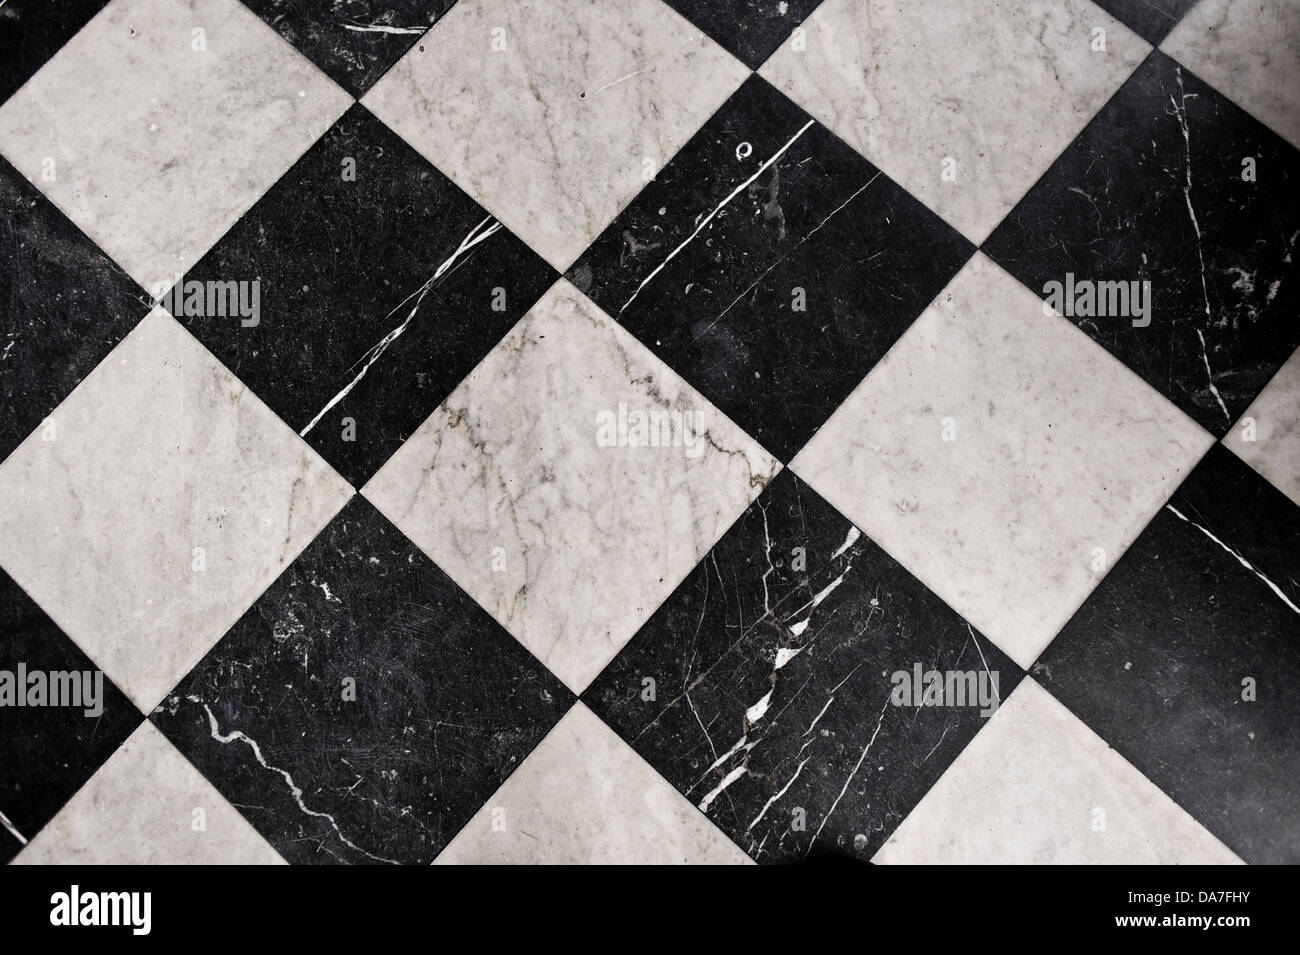 black and white marble tiles bathroom flooring stock. Black Bedroom Furniture Sets. Home Design Ideas